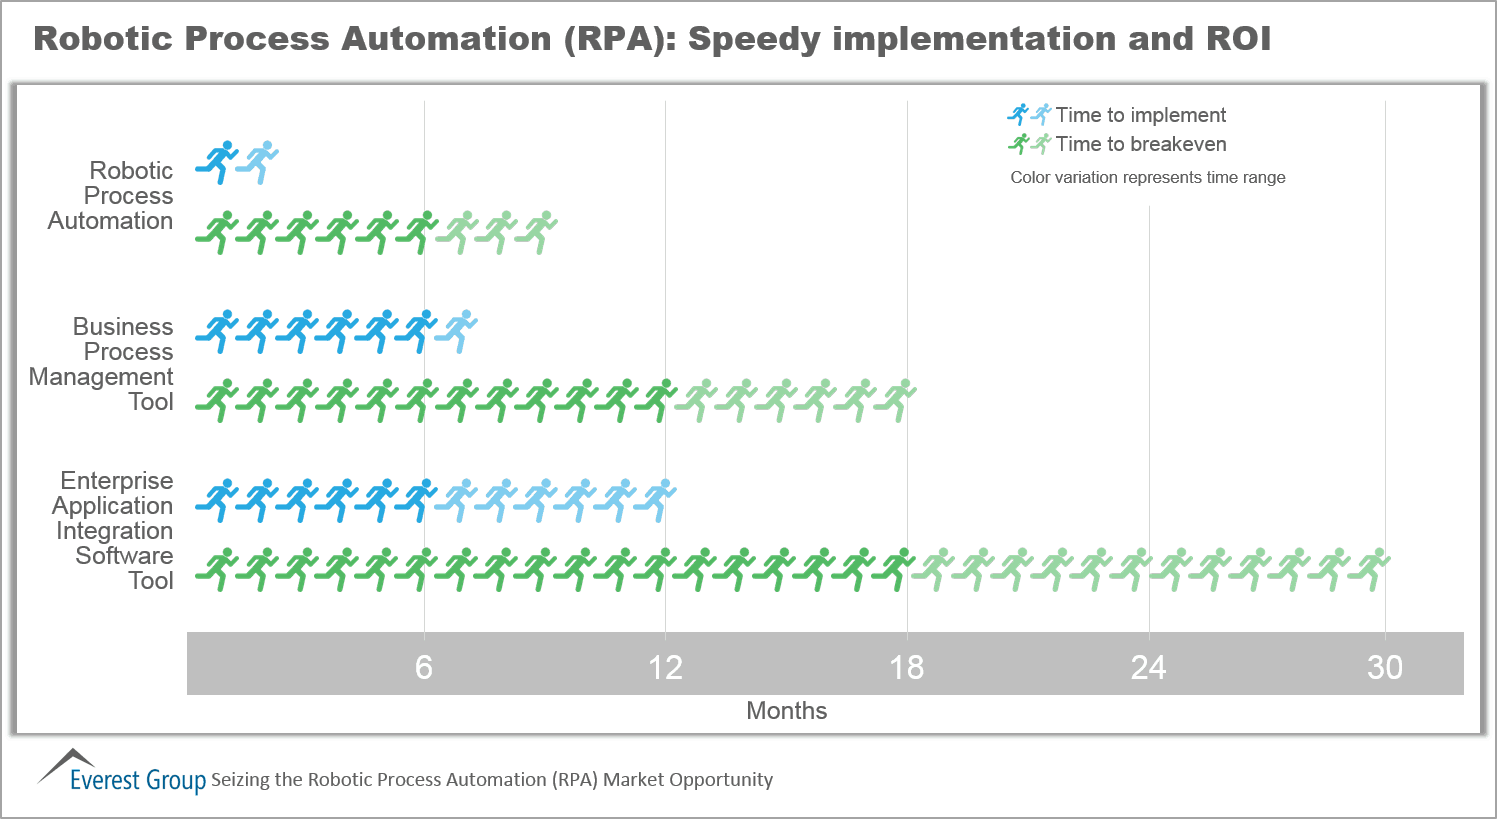 Robotic Process Automation (RPA): Speedy Implementation and